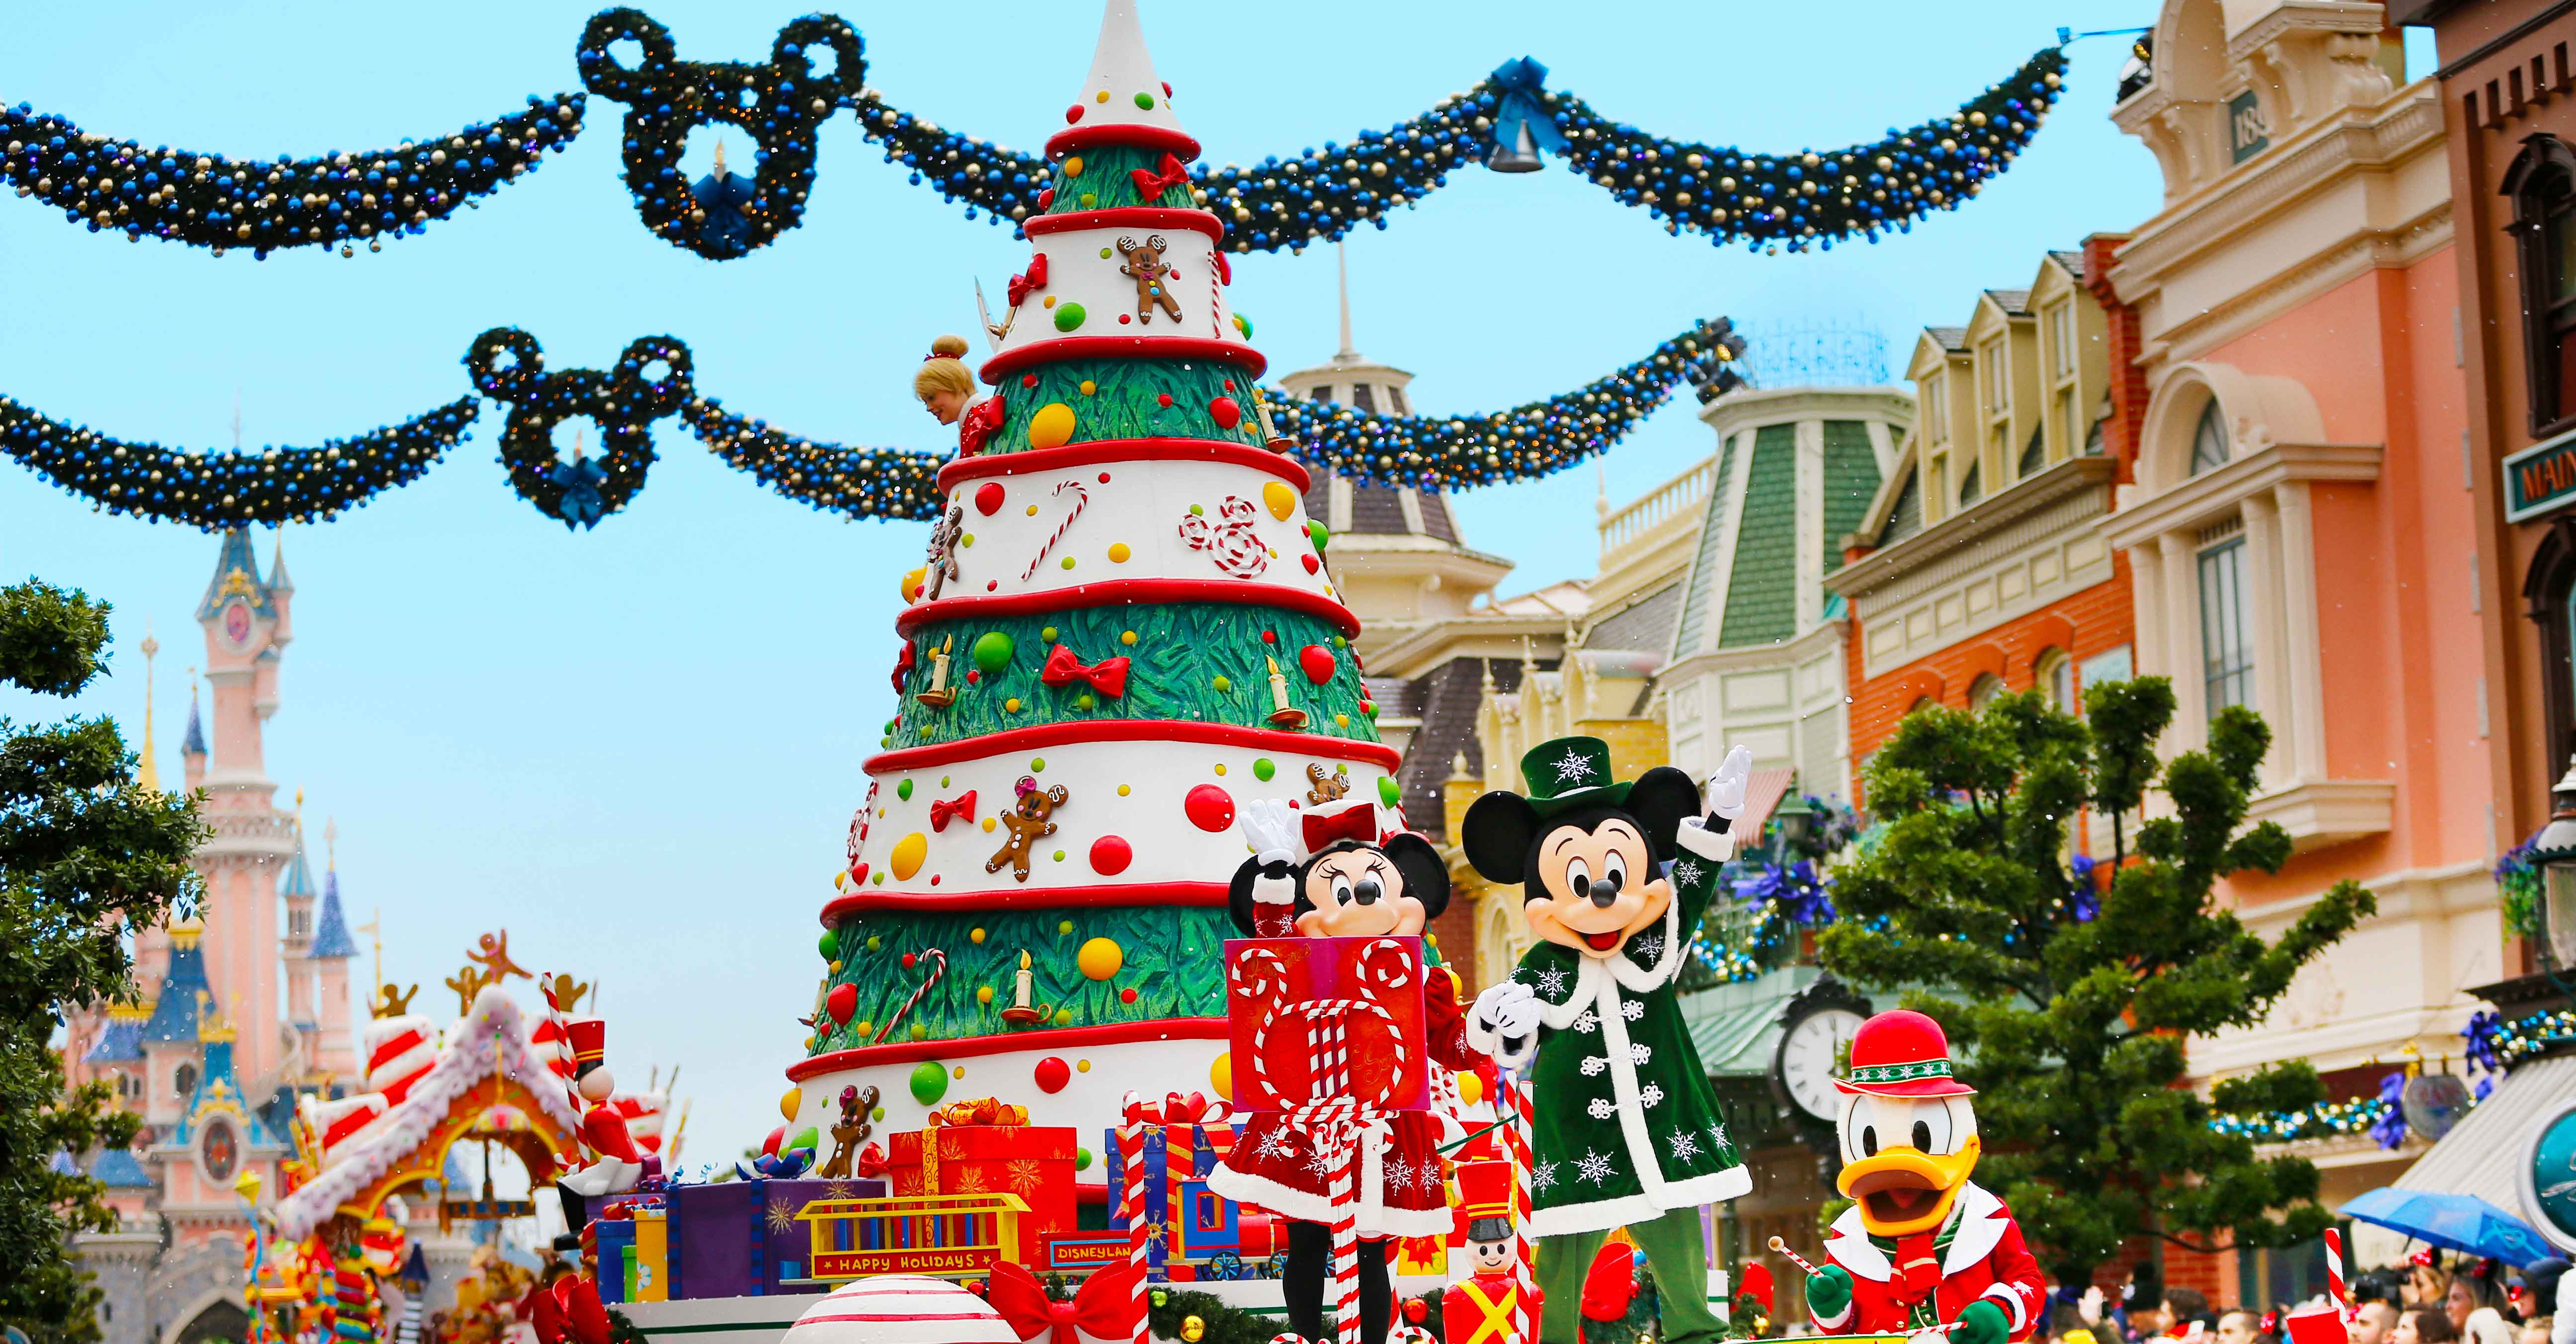 Disneyland Christmas.Disneyland Paris Christmas Season Low Prices Book With